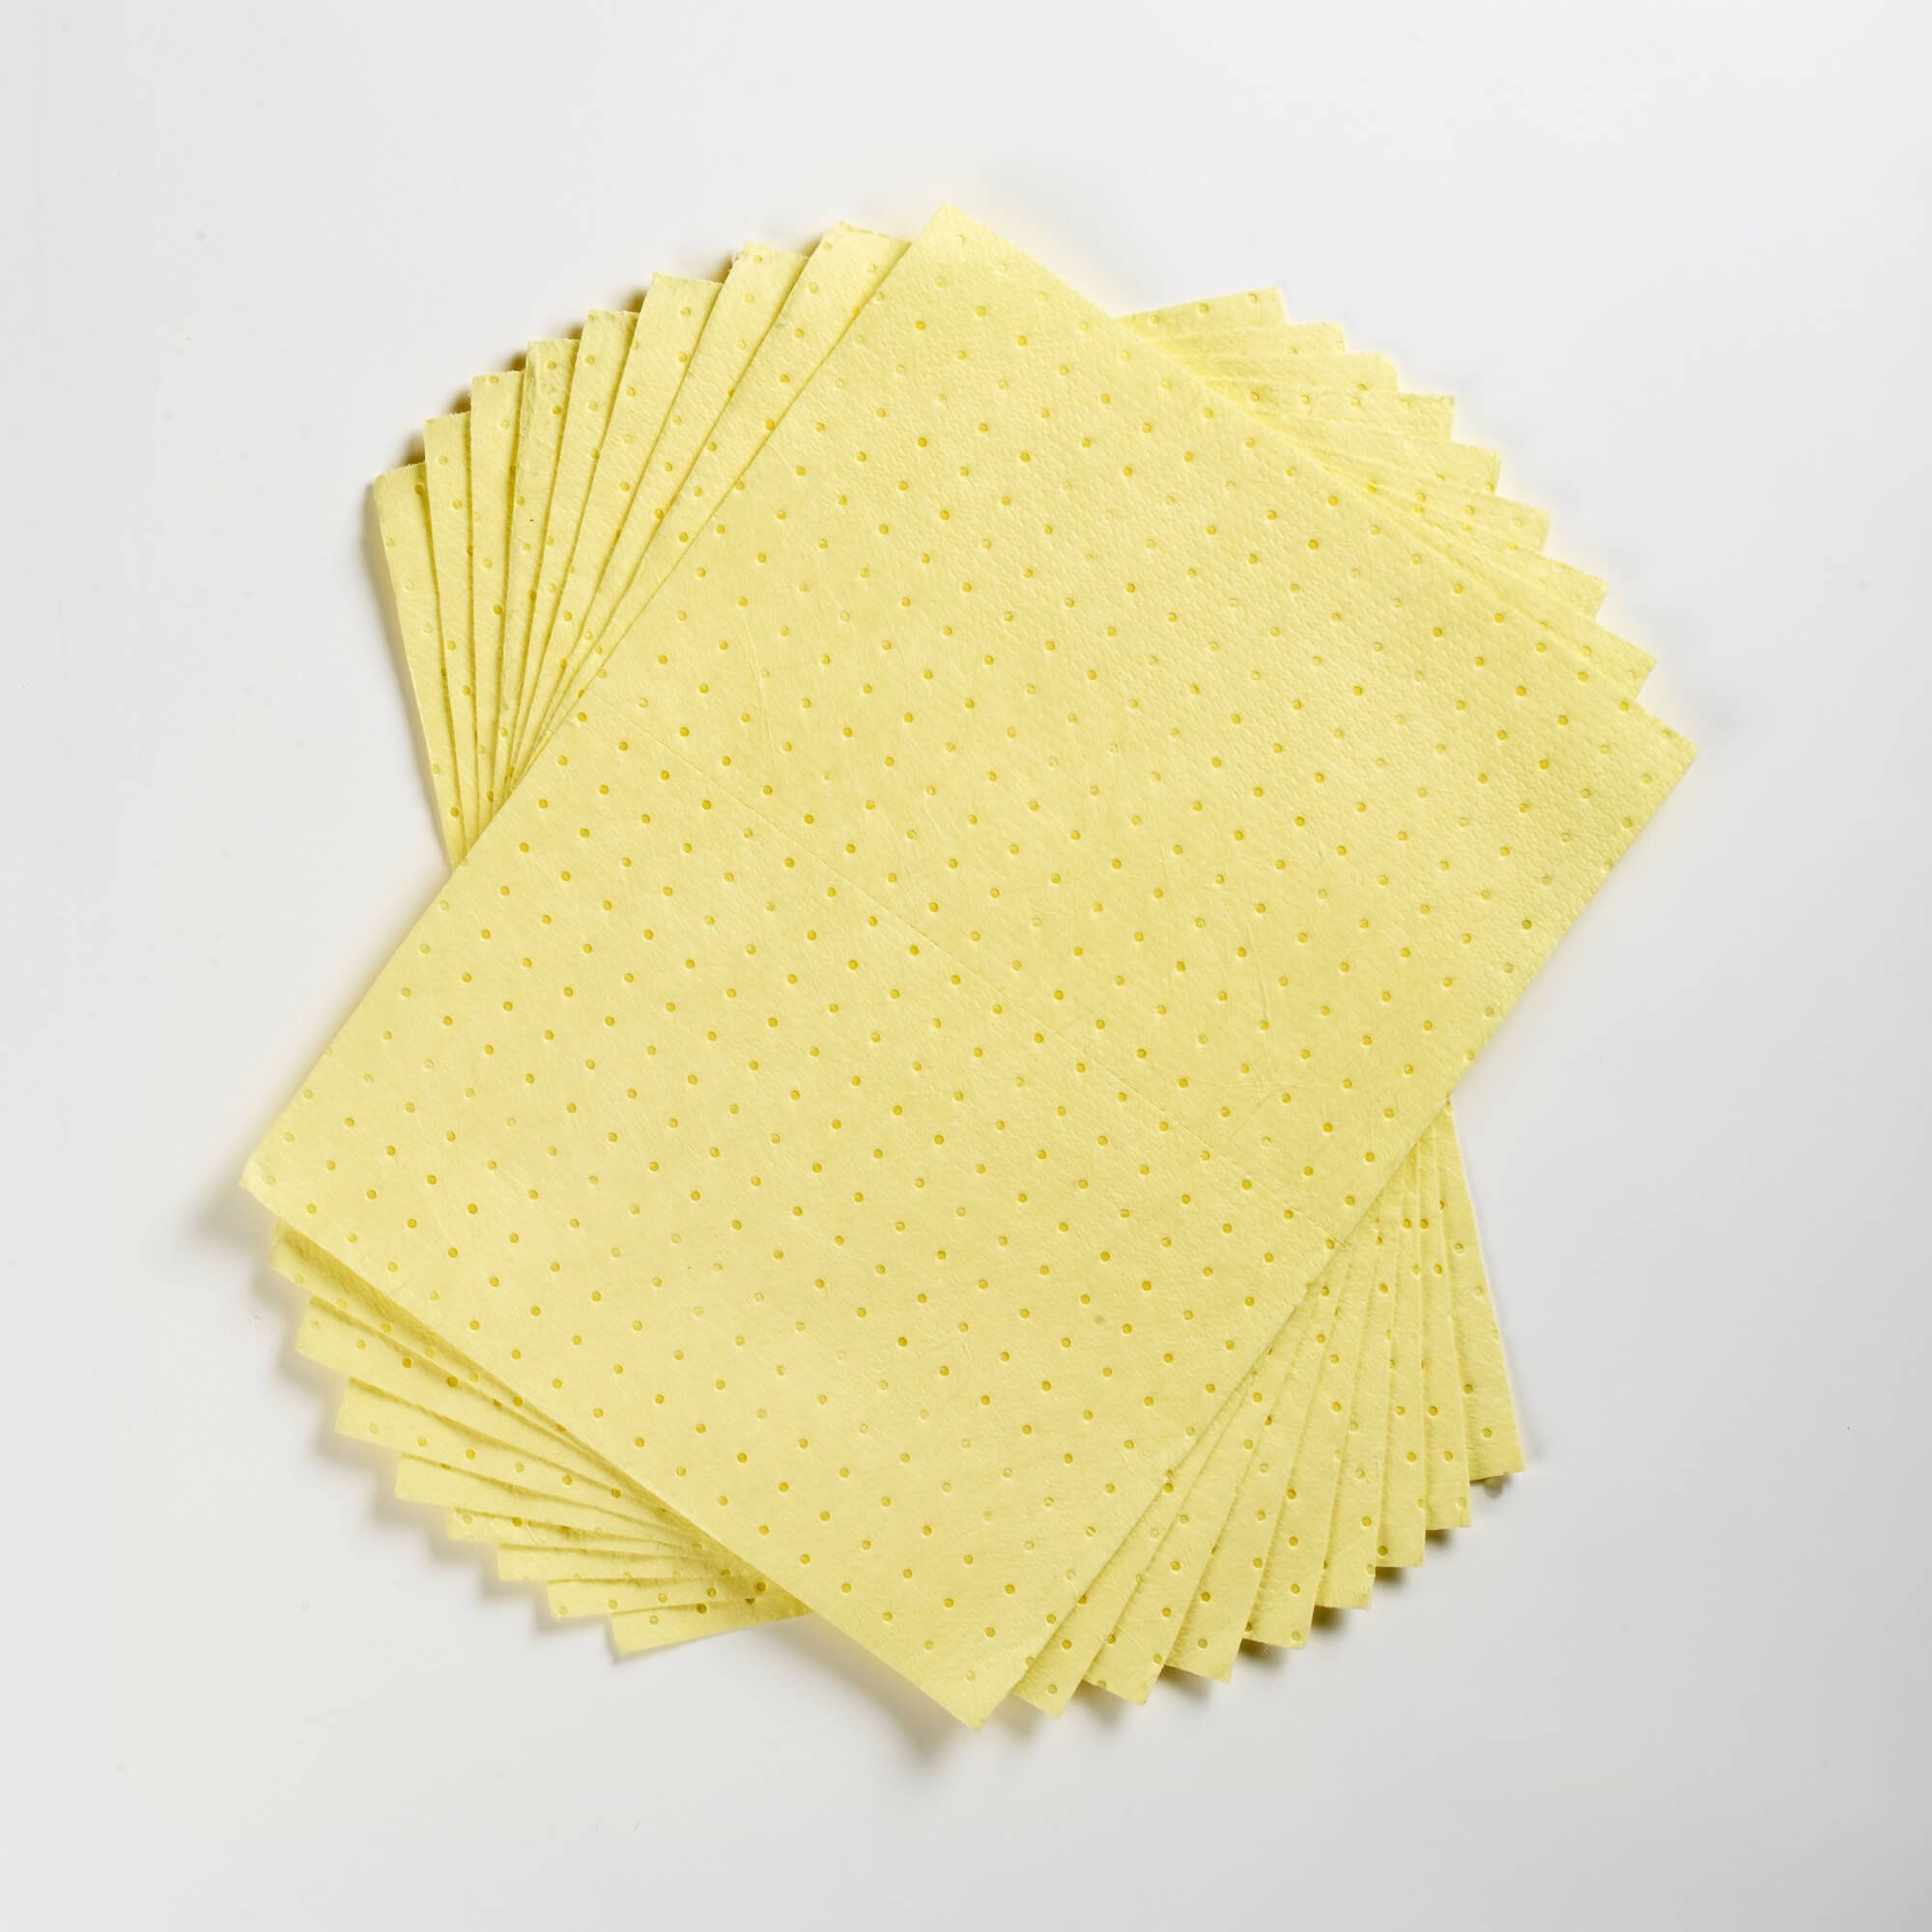 Chem-Lock® Active 010 Absorbency Pads